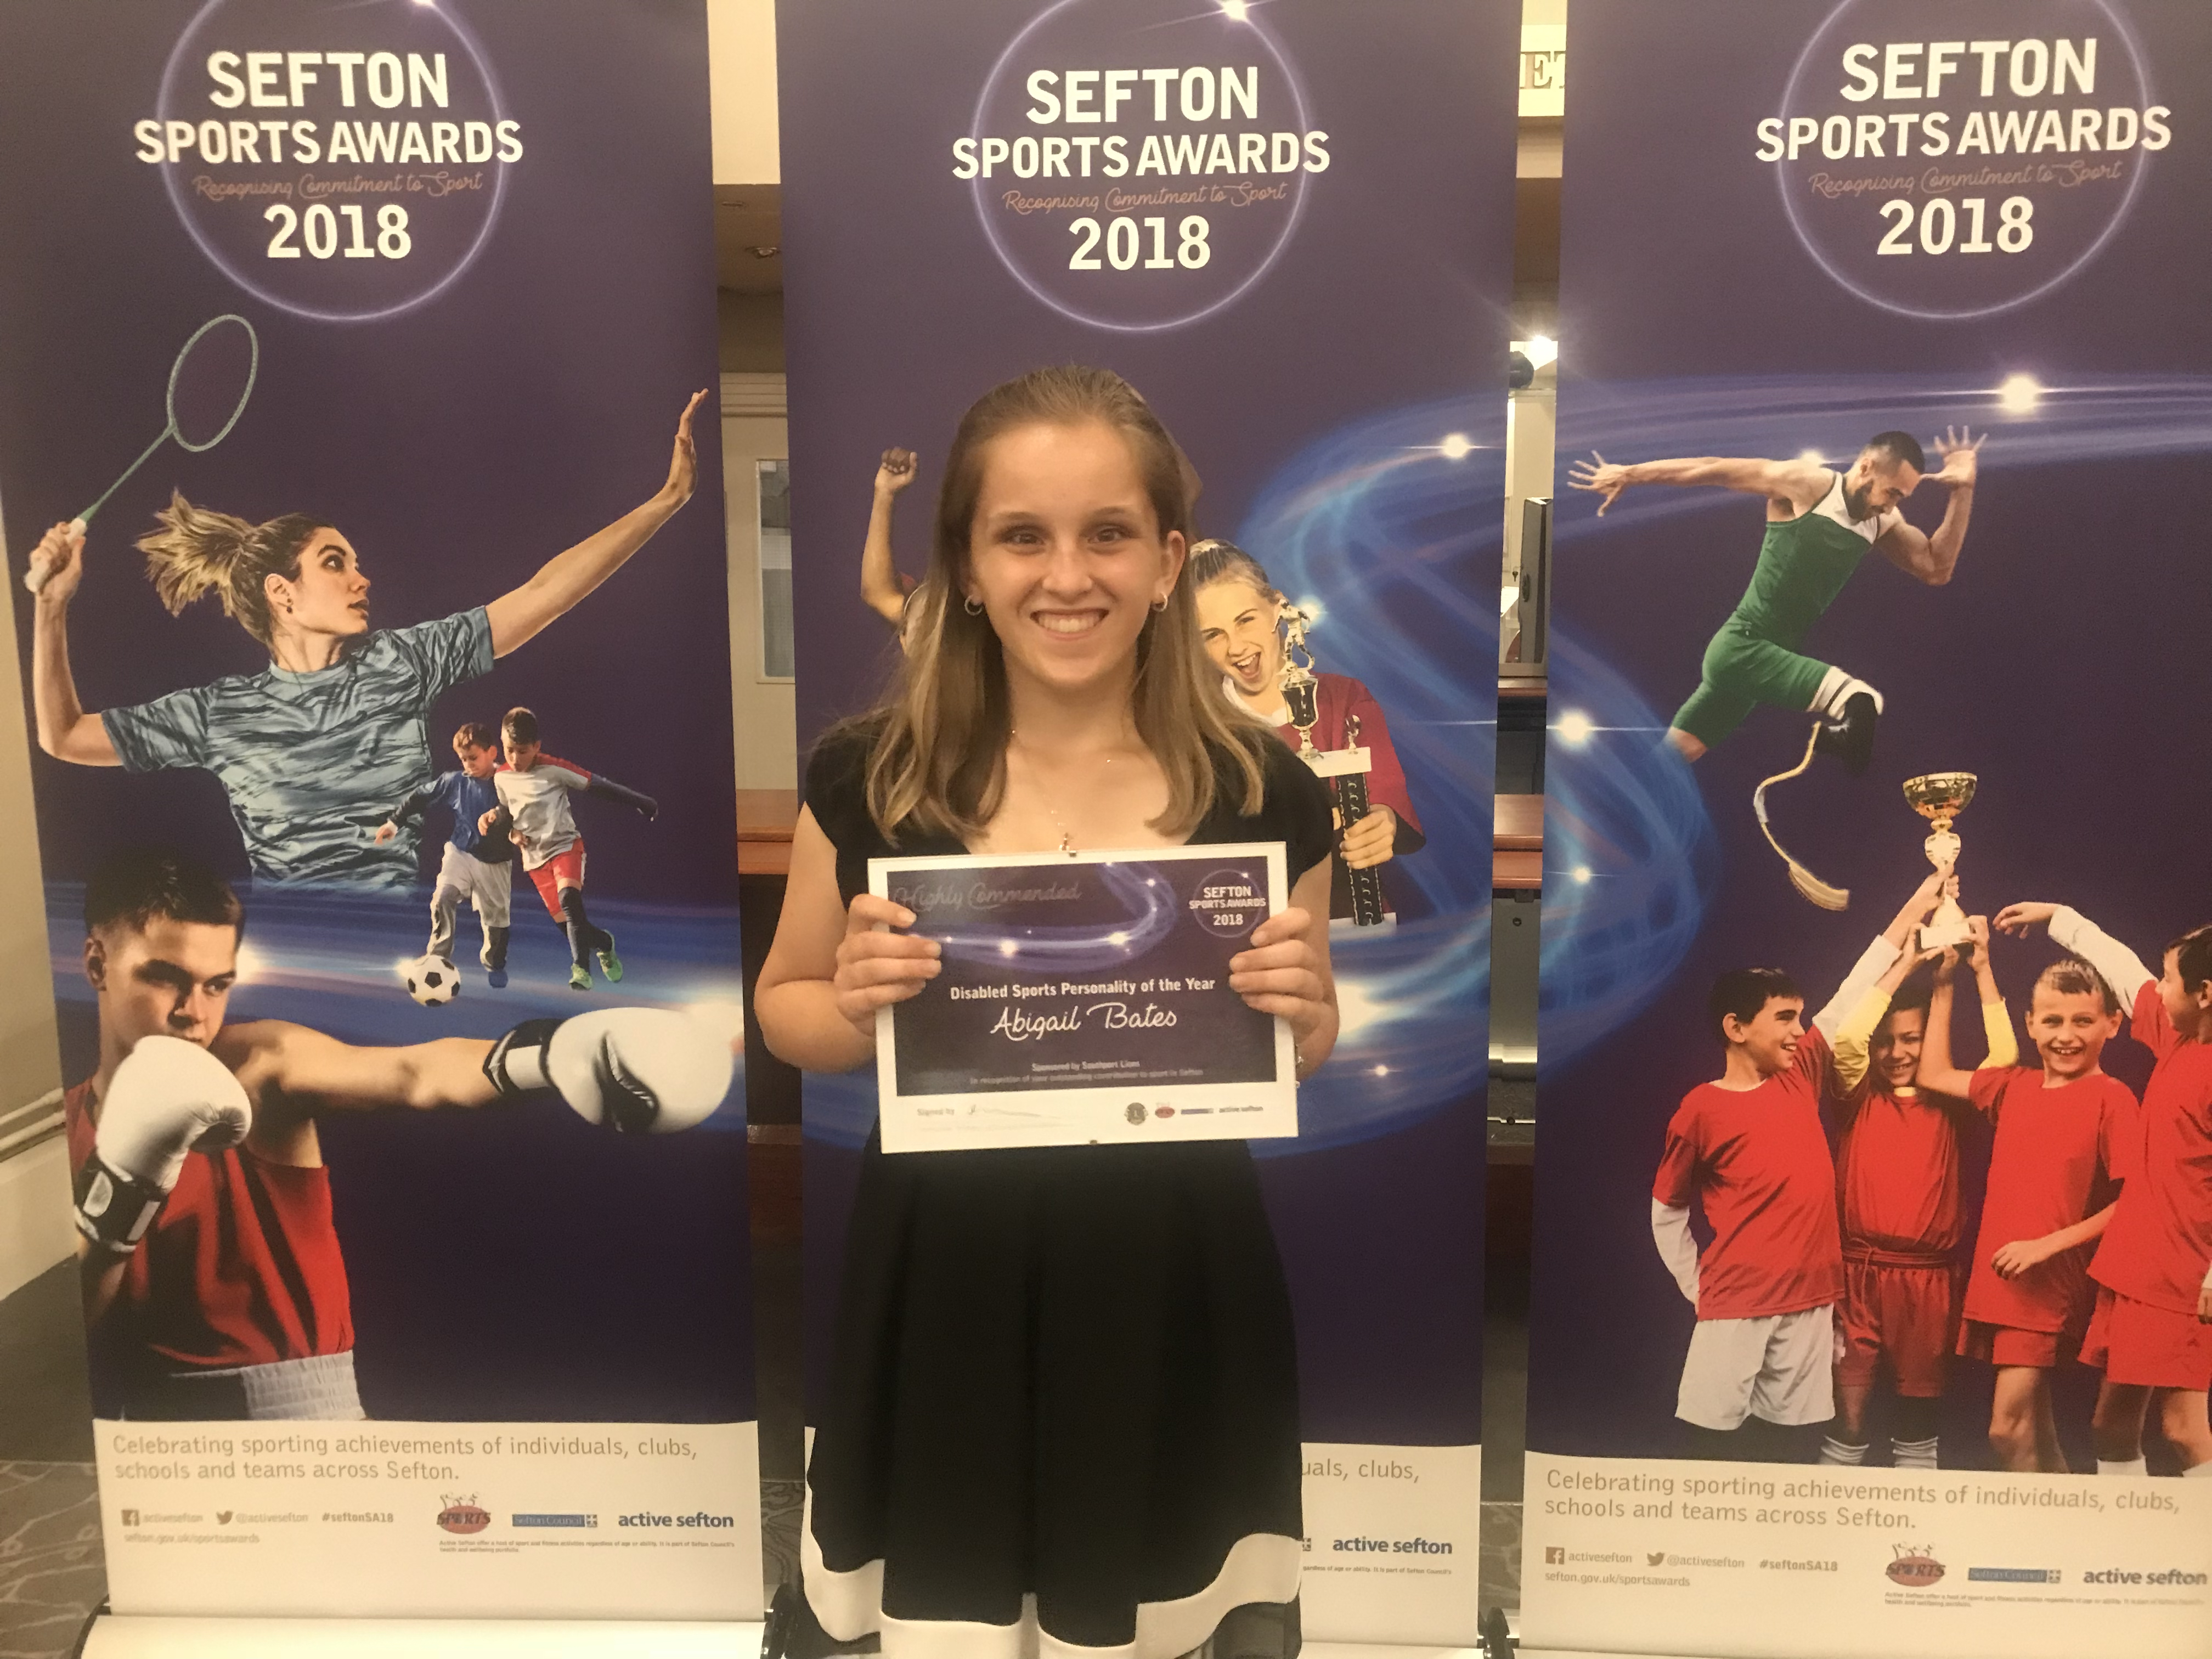 Abigail Bates (highly commended) Disabled Sports Personality